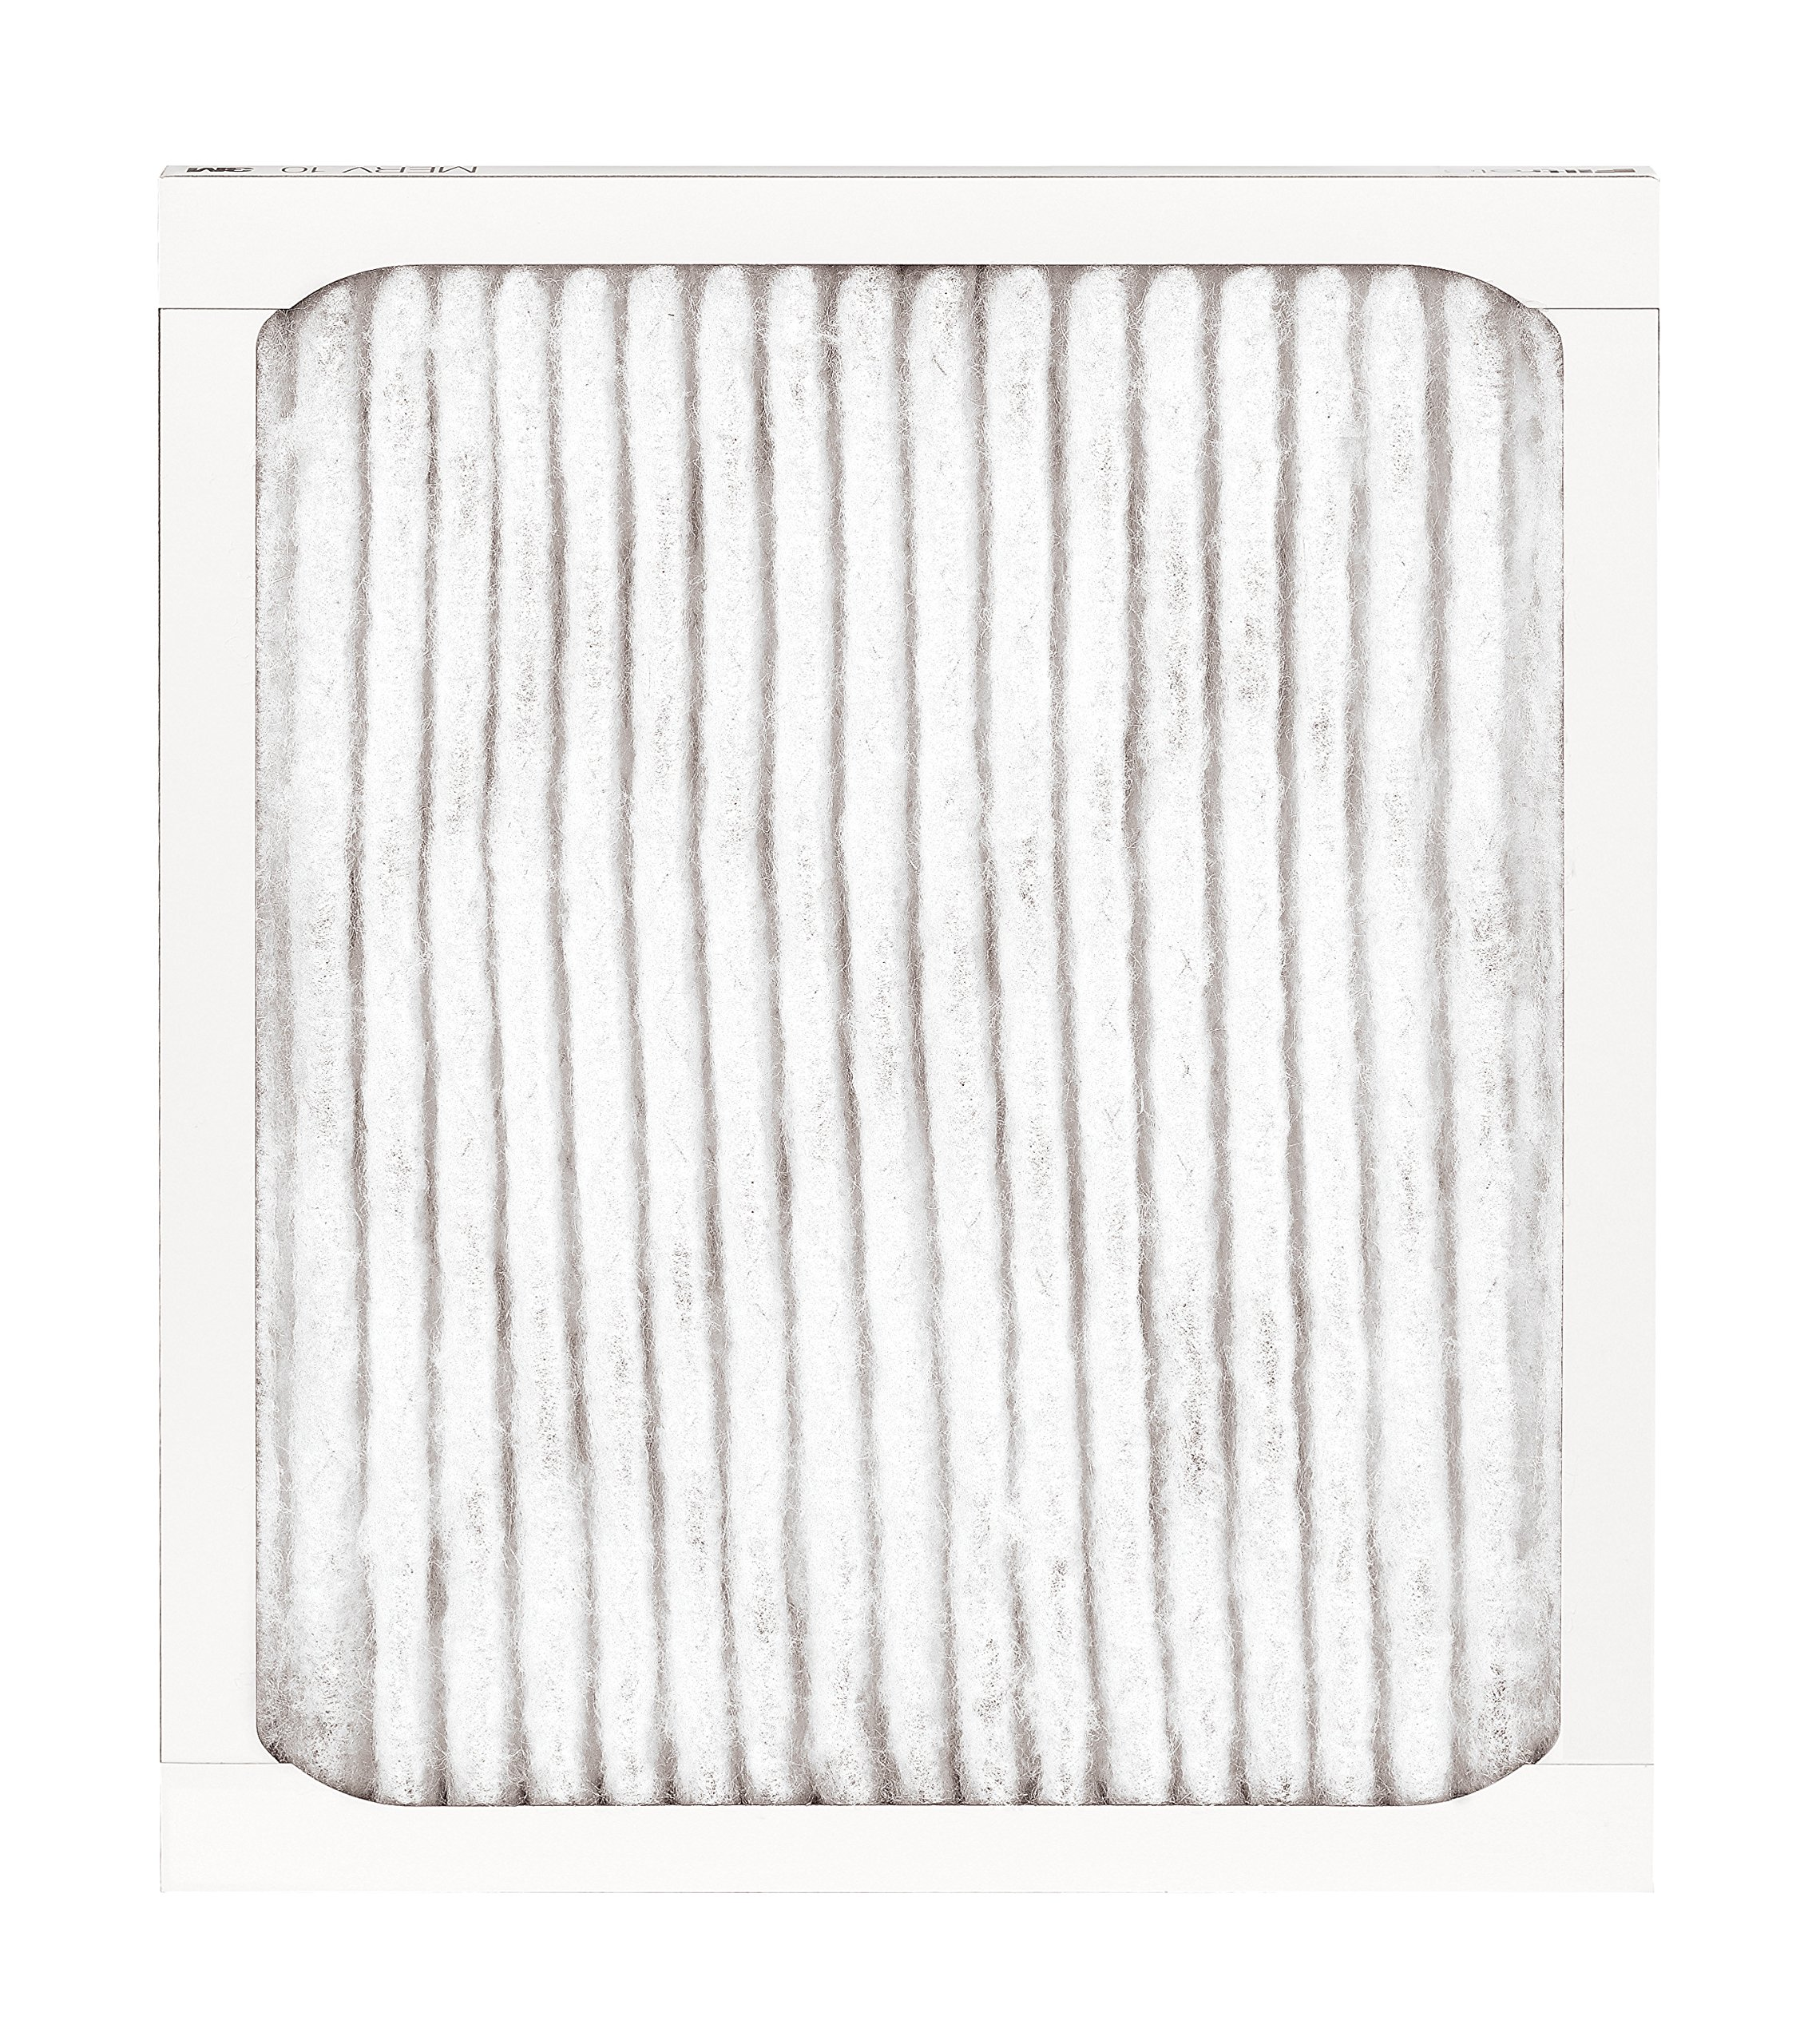 Filtrete 16x20x1, AC Furnace Air Filter, MPR 1000, Micro Allergen Defence, 2-Pack by Filtrete (Image #4)